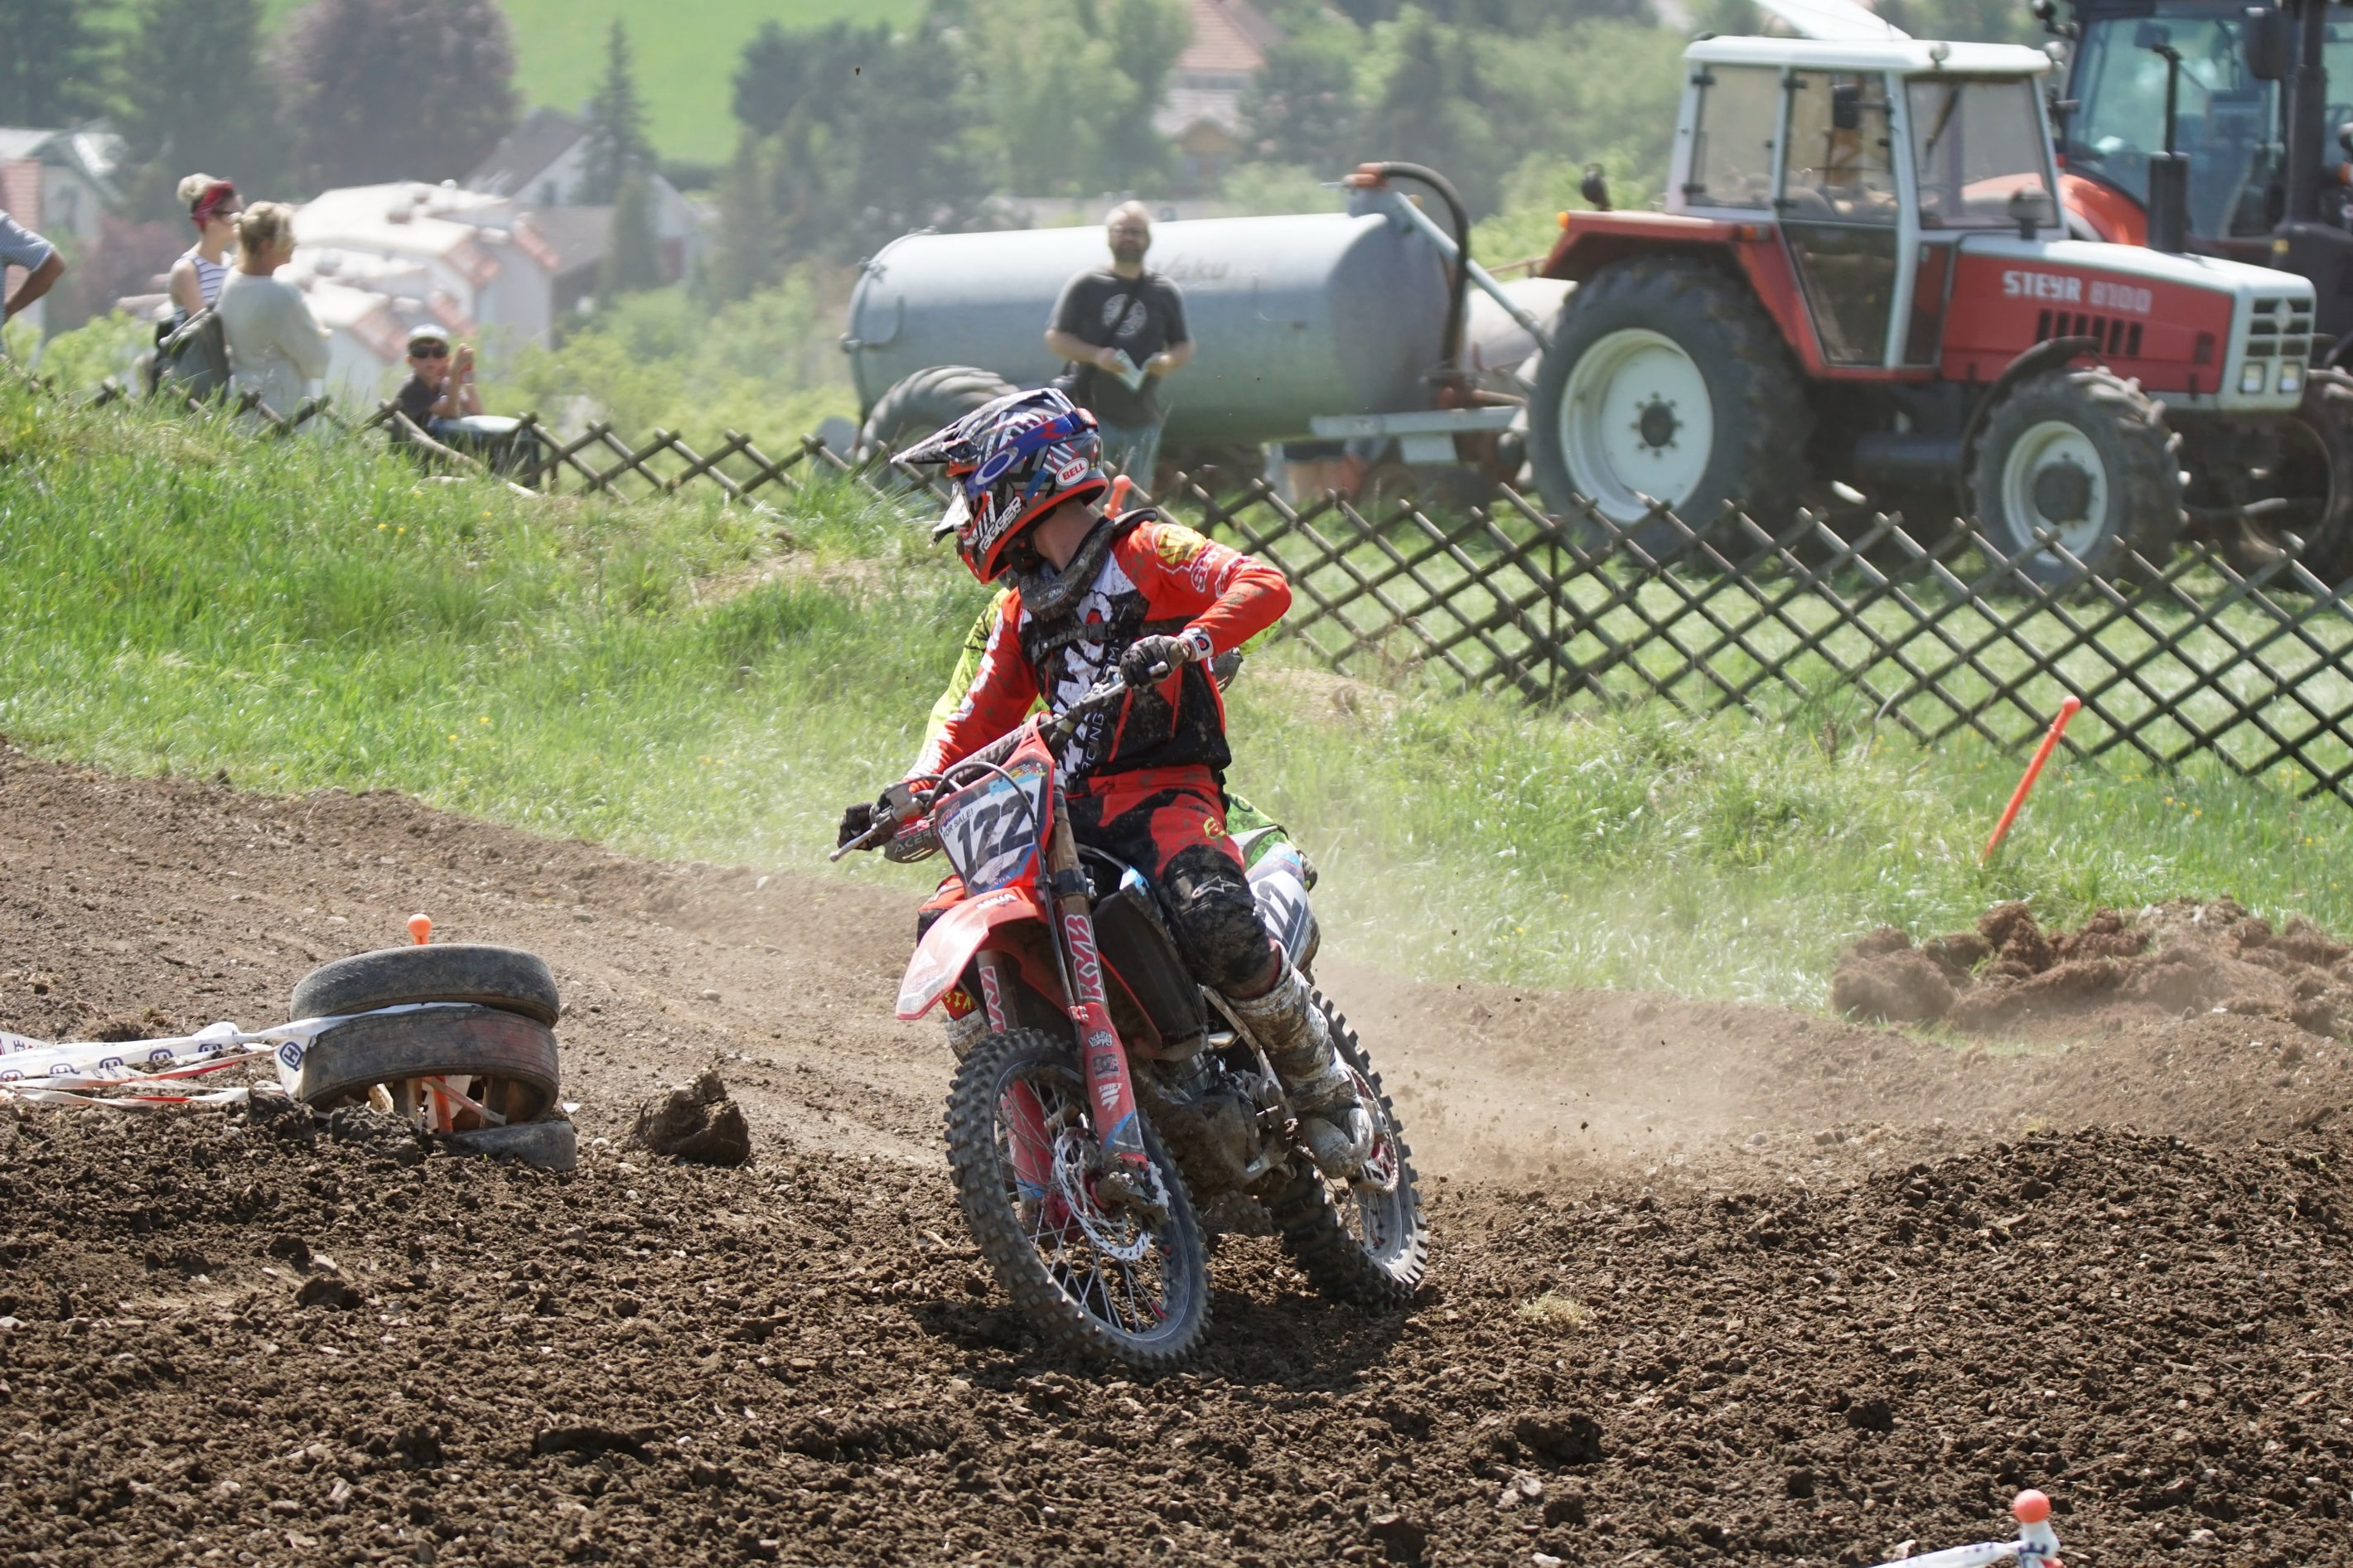 DSC 454_Moto Cross Sittendorf Teil1 am 29.04.2018